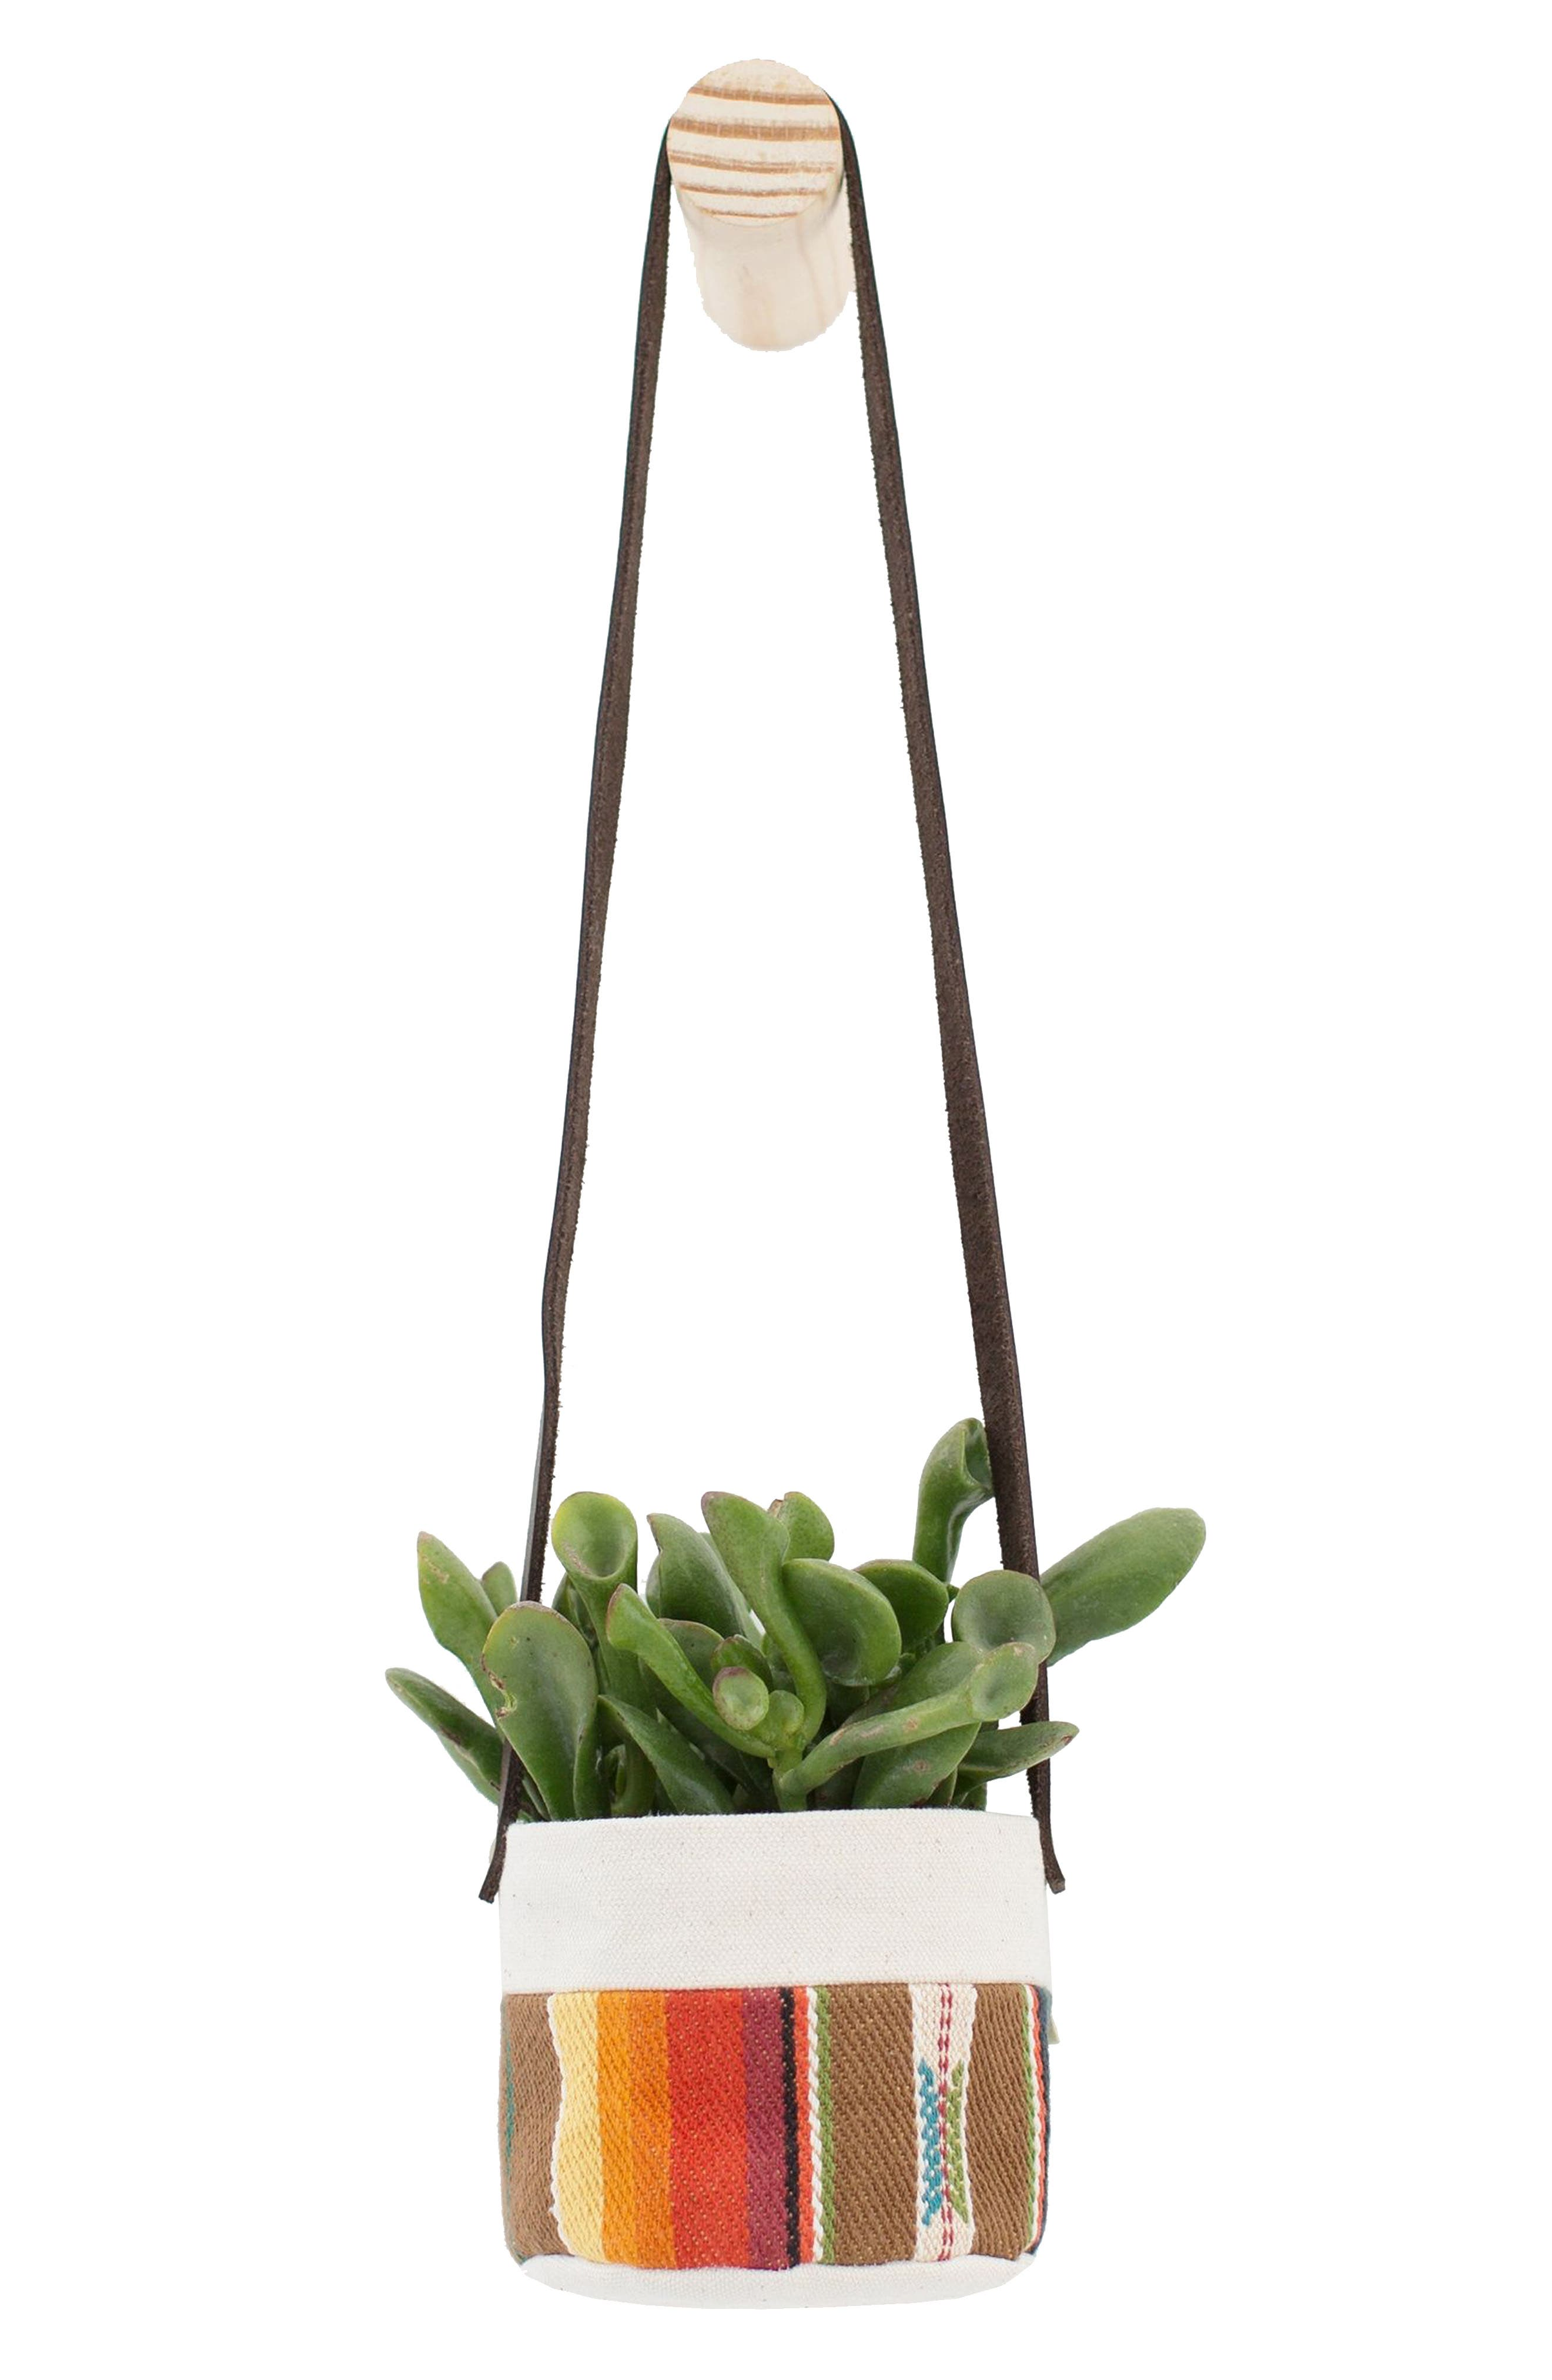 GOOD COMPANY WARES 4-Inch Stripe Canvas Hanging Planter